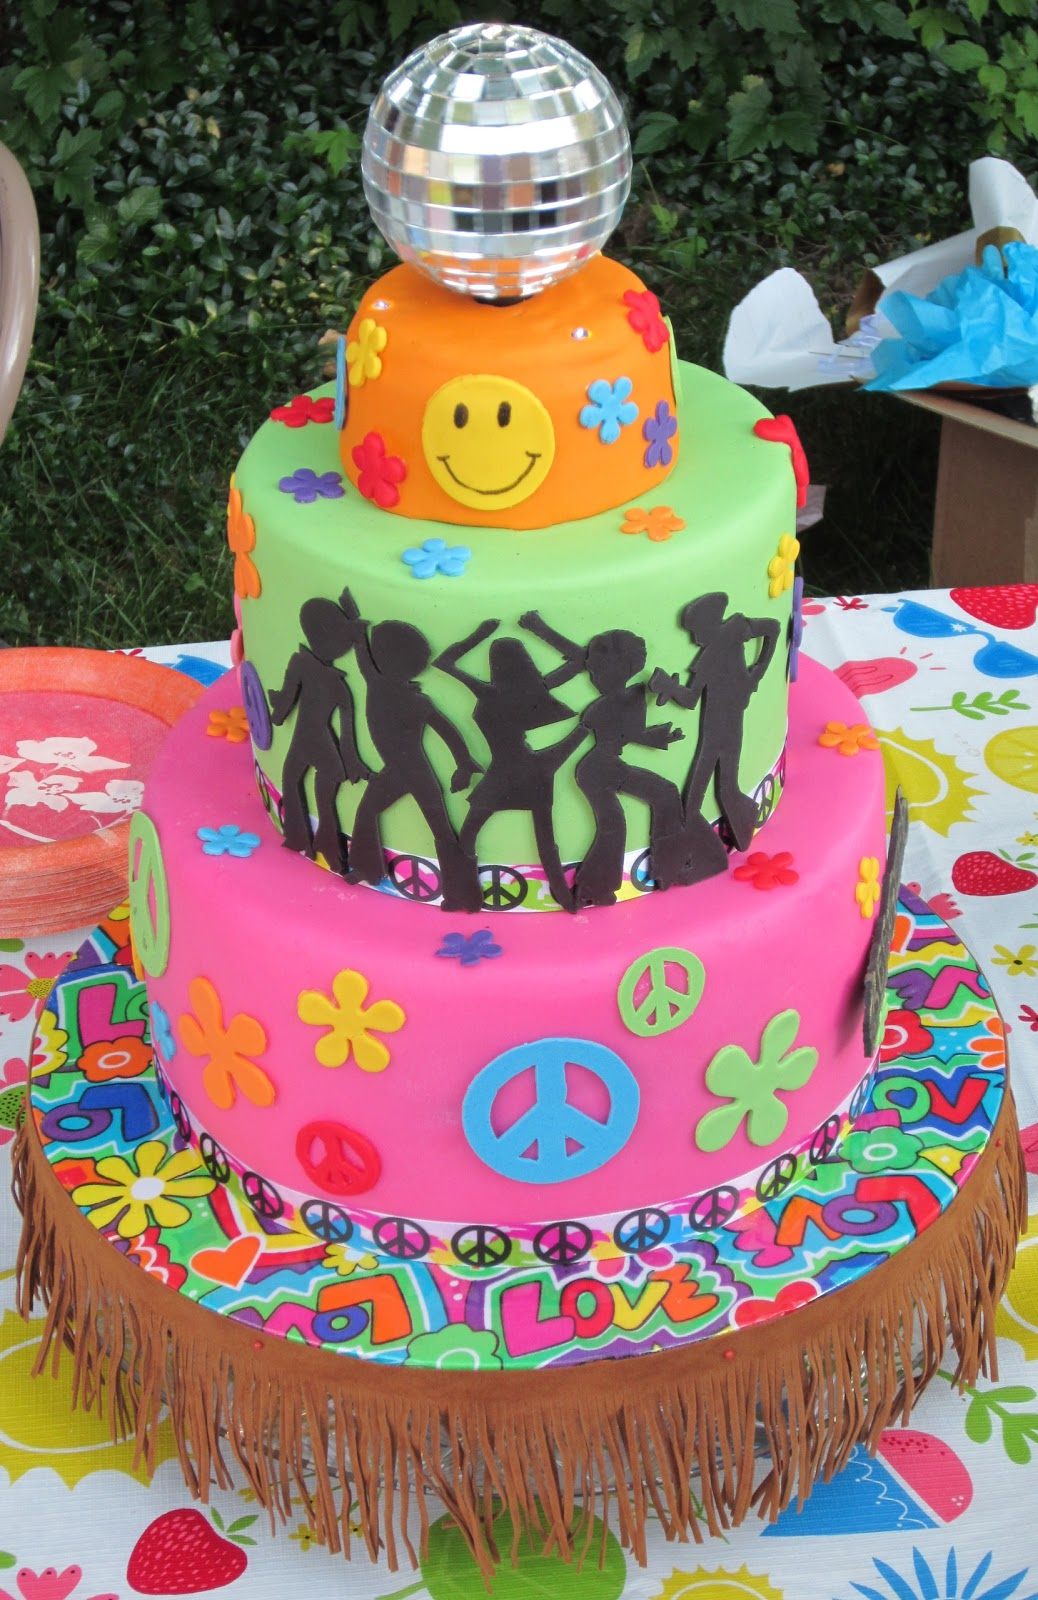 Disco Party Cake Images : J s Cakes: 70s Birthday Cake